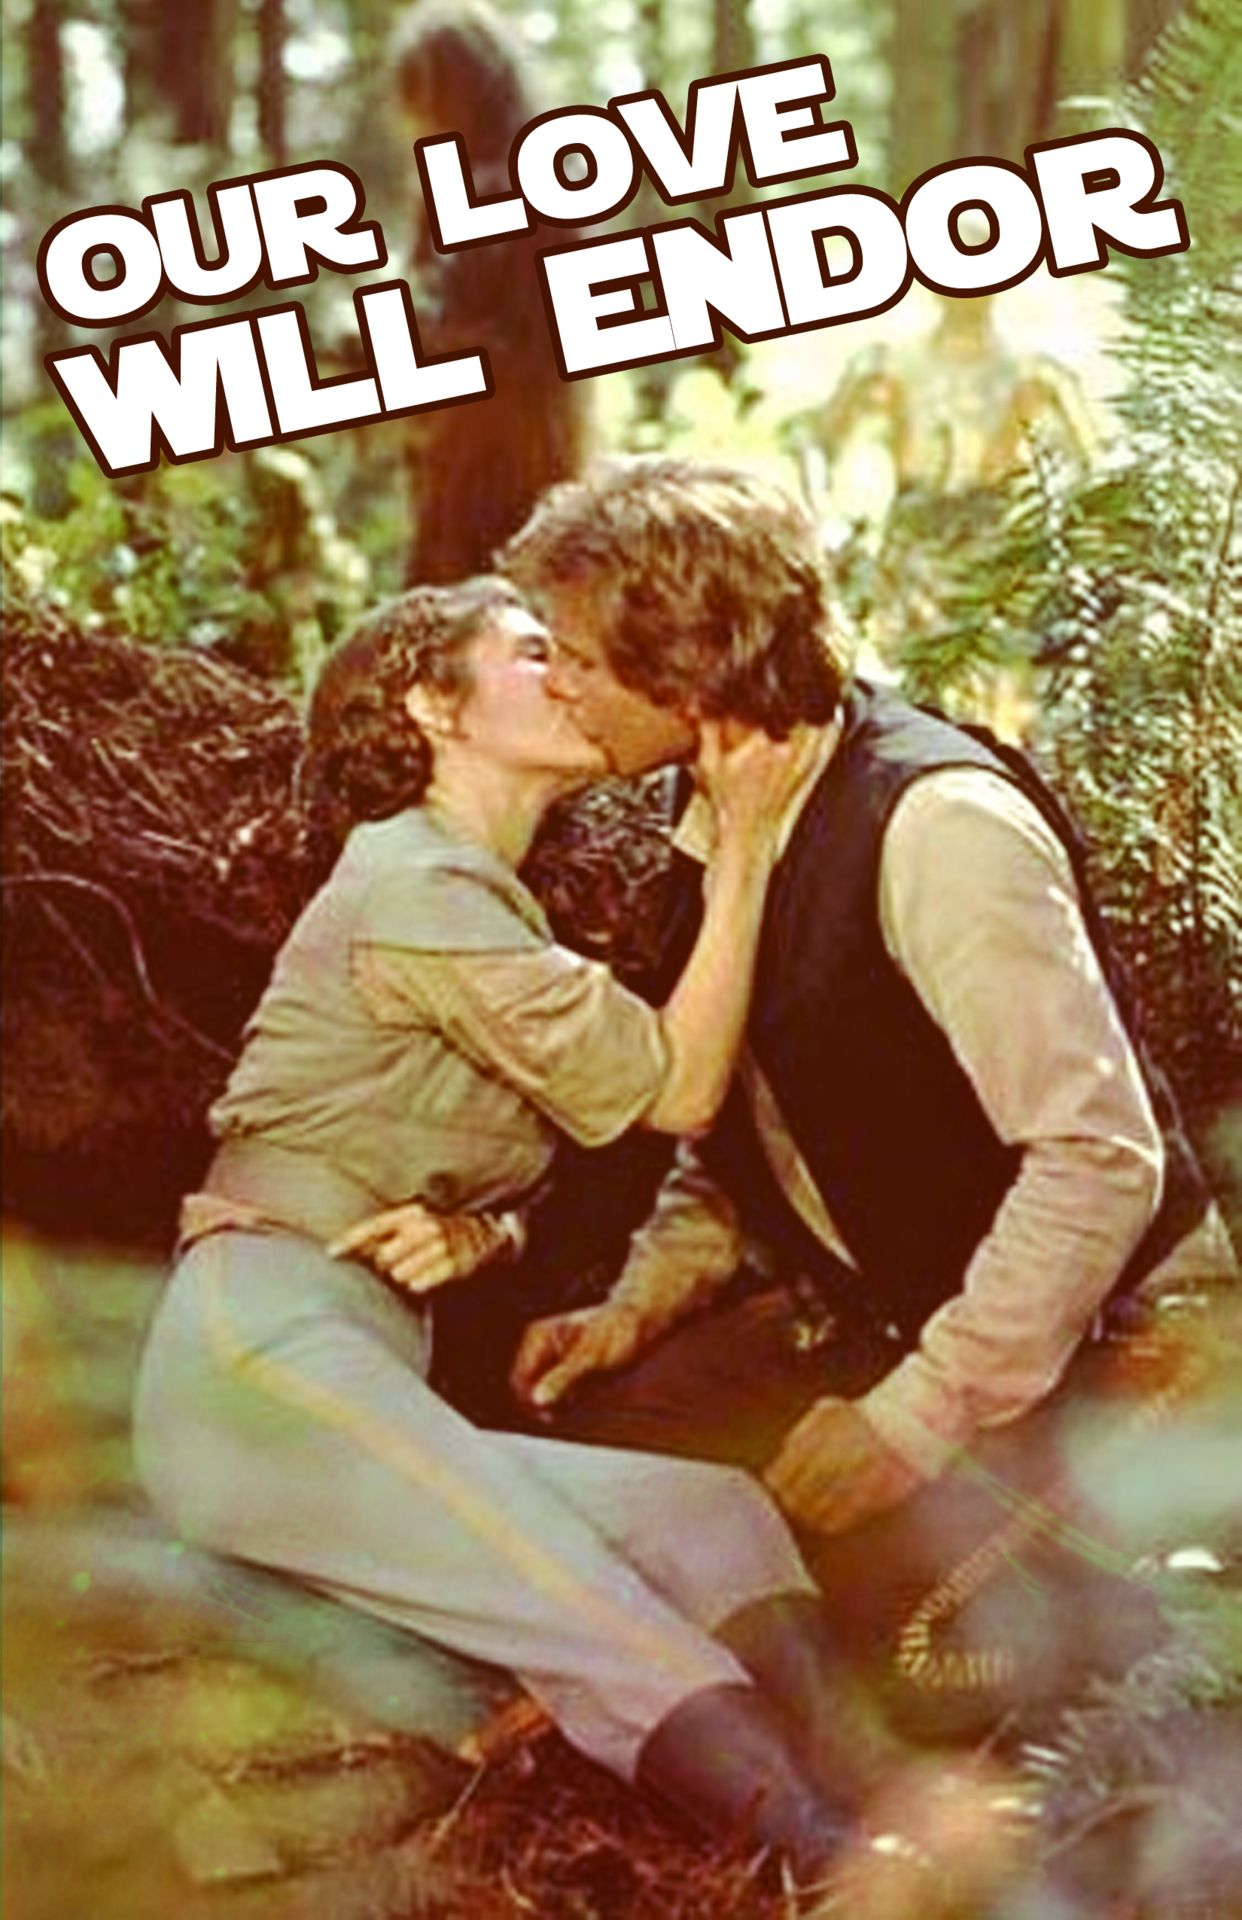 Princess Leia and Han Solo #StarWars I don't know what I love more here: the Star Wars or the clever play on words haha. This would be a PERFECT valentine for me.